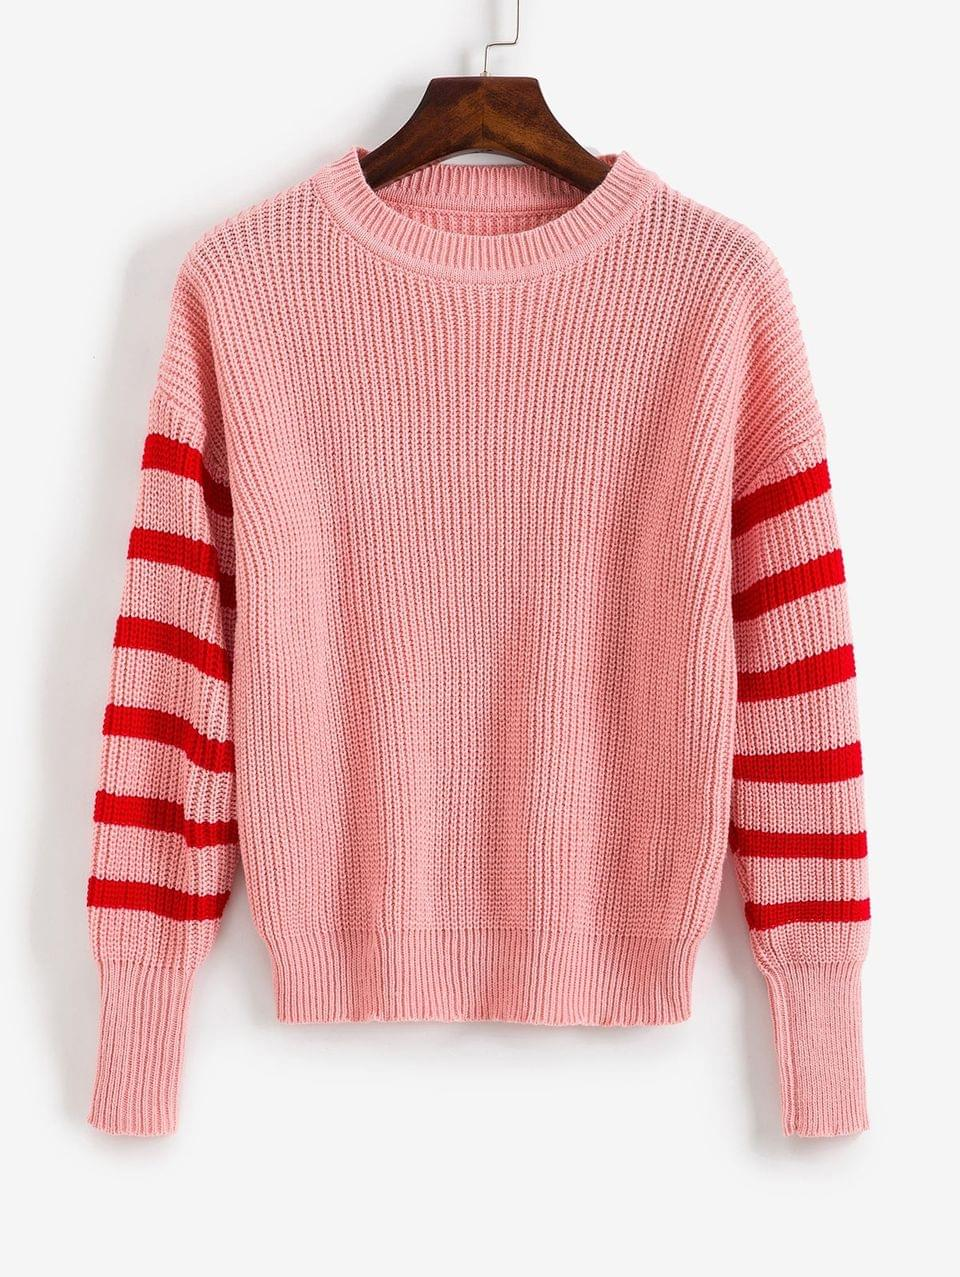 Women's Striped Cable Knit Sweater - Rose L